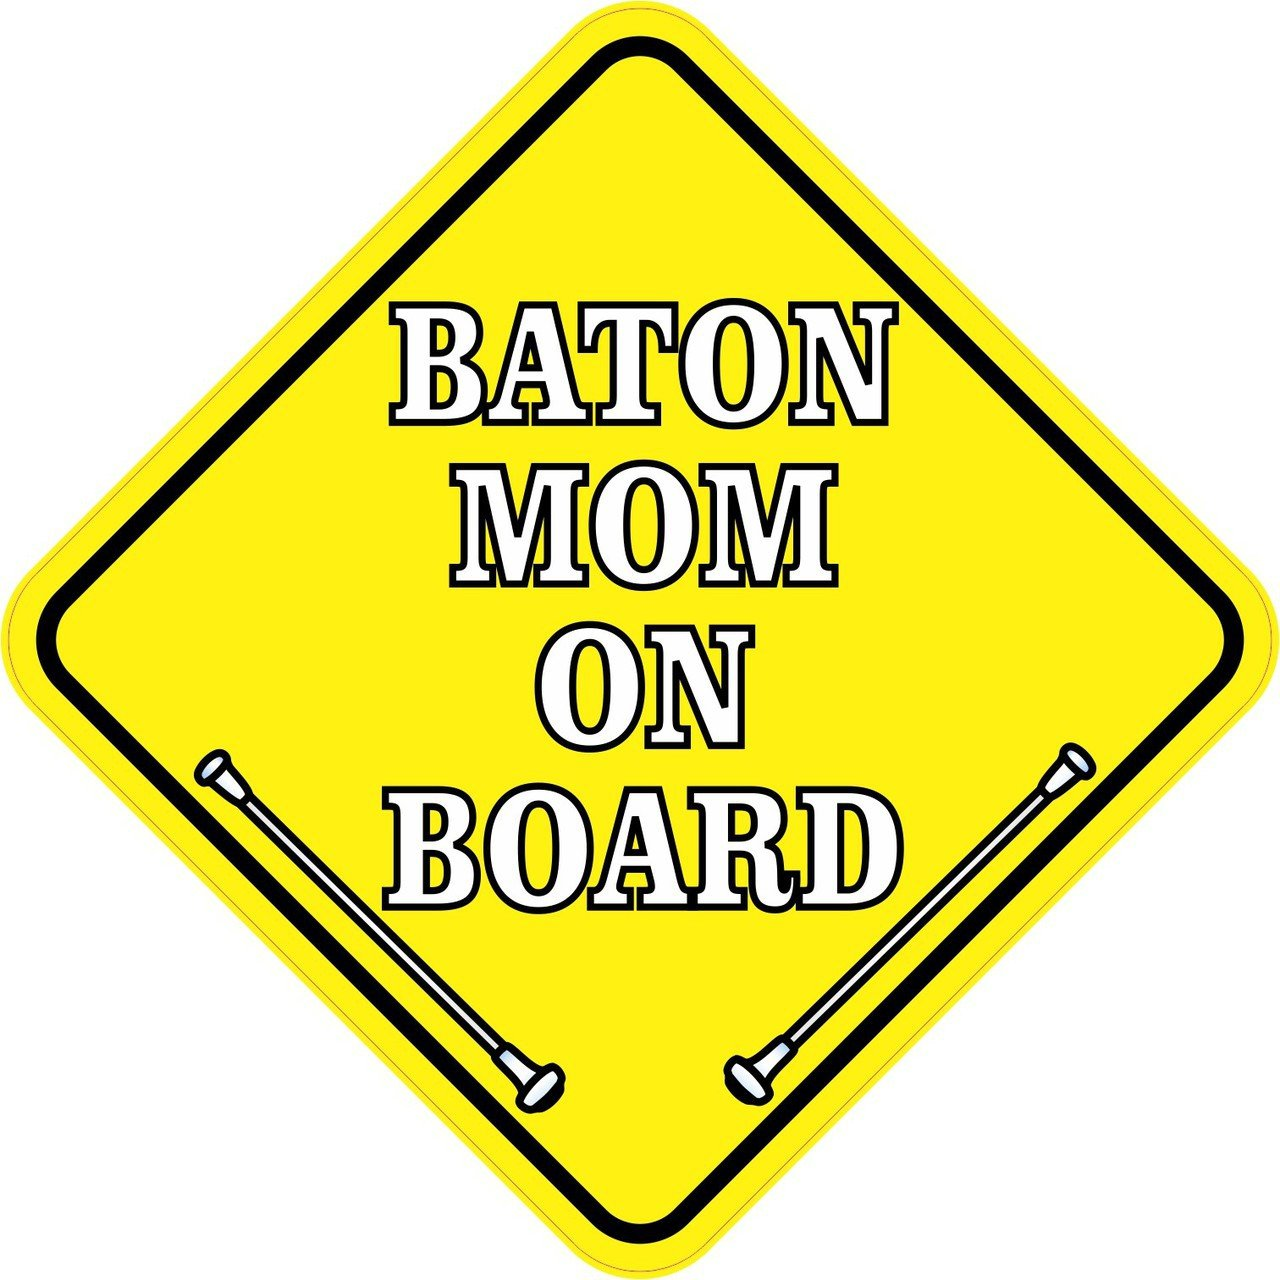 Baton Mom On Board Magnet